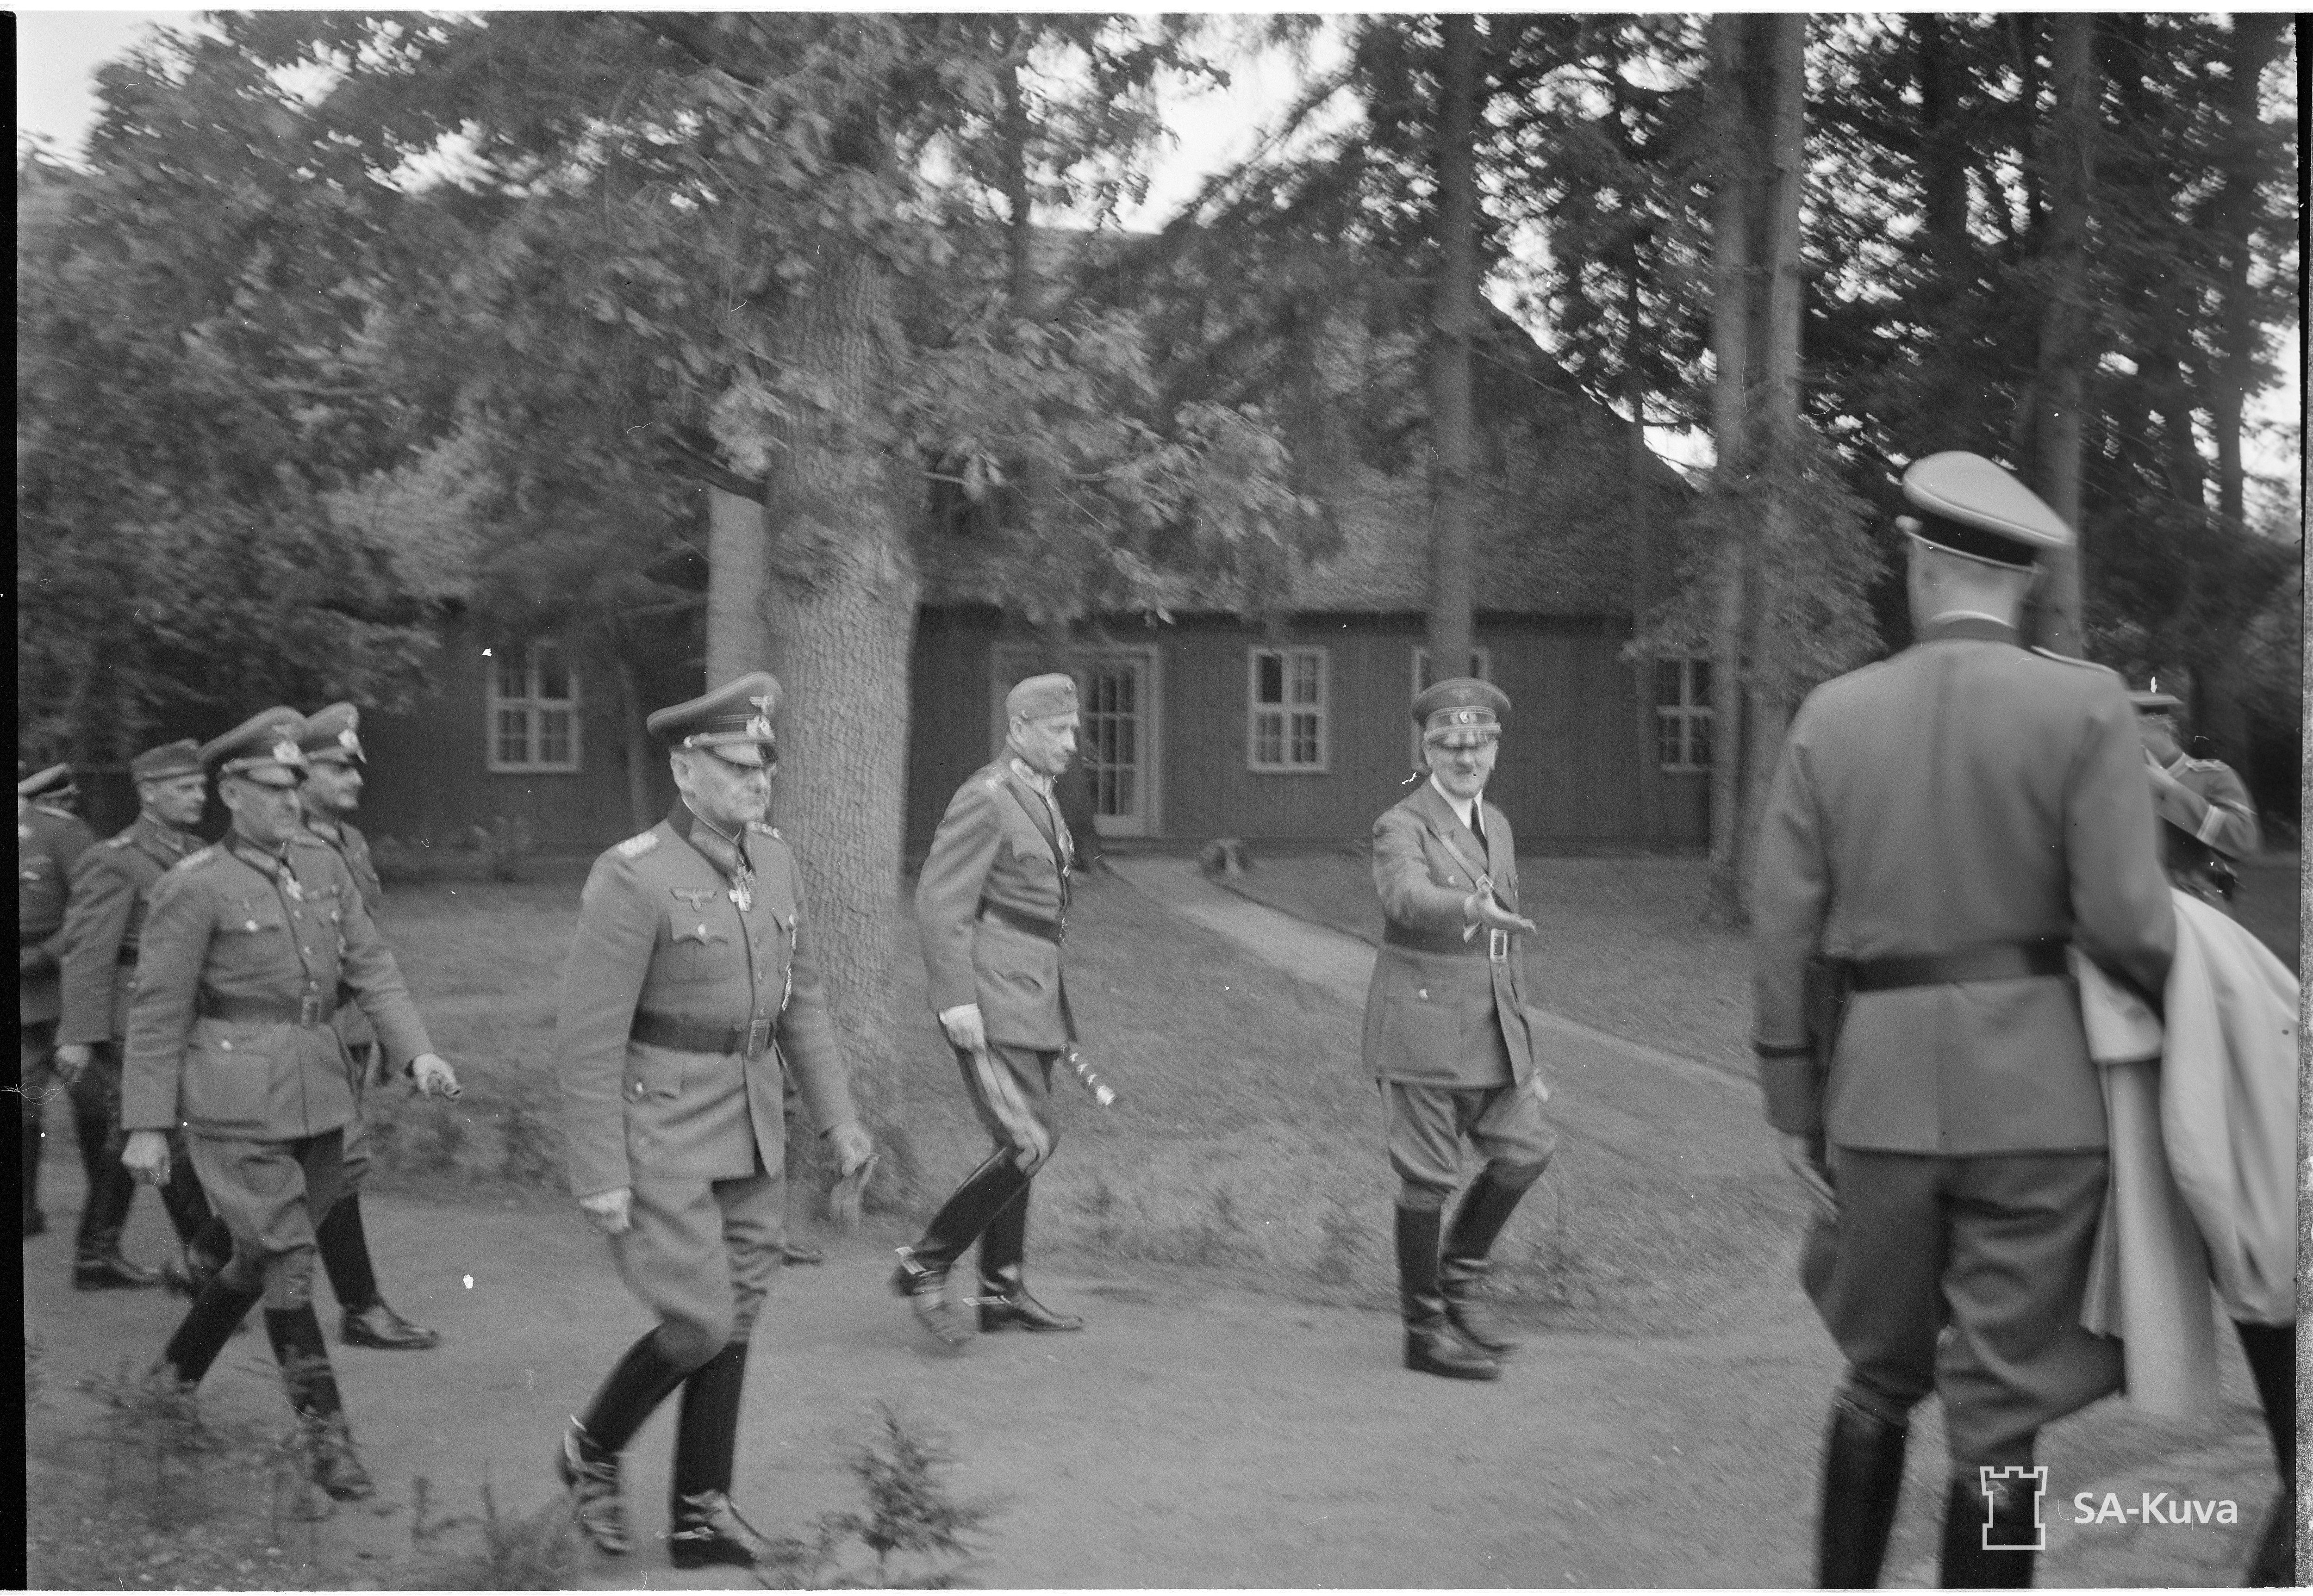 Adolf Hitler and Gustav Mannerheim at the Wolfsschanze